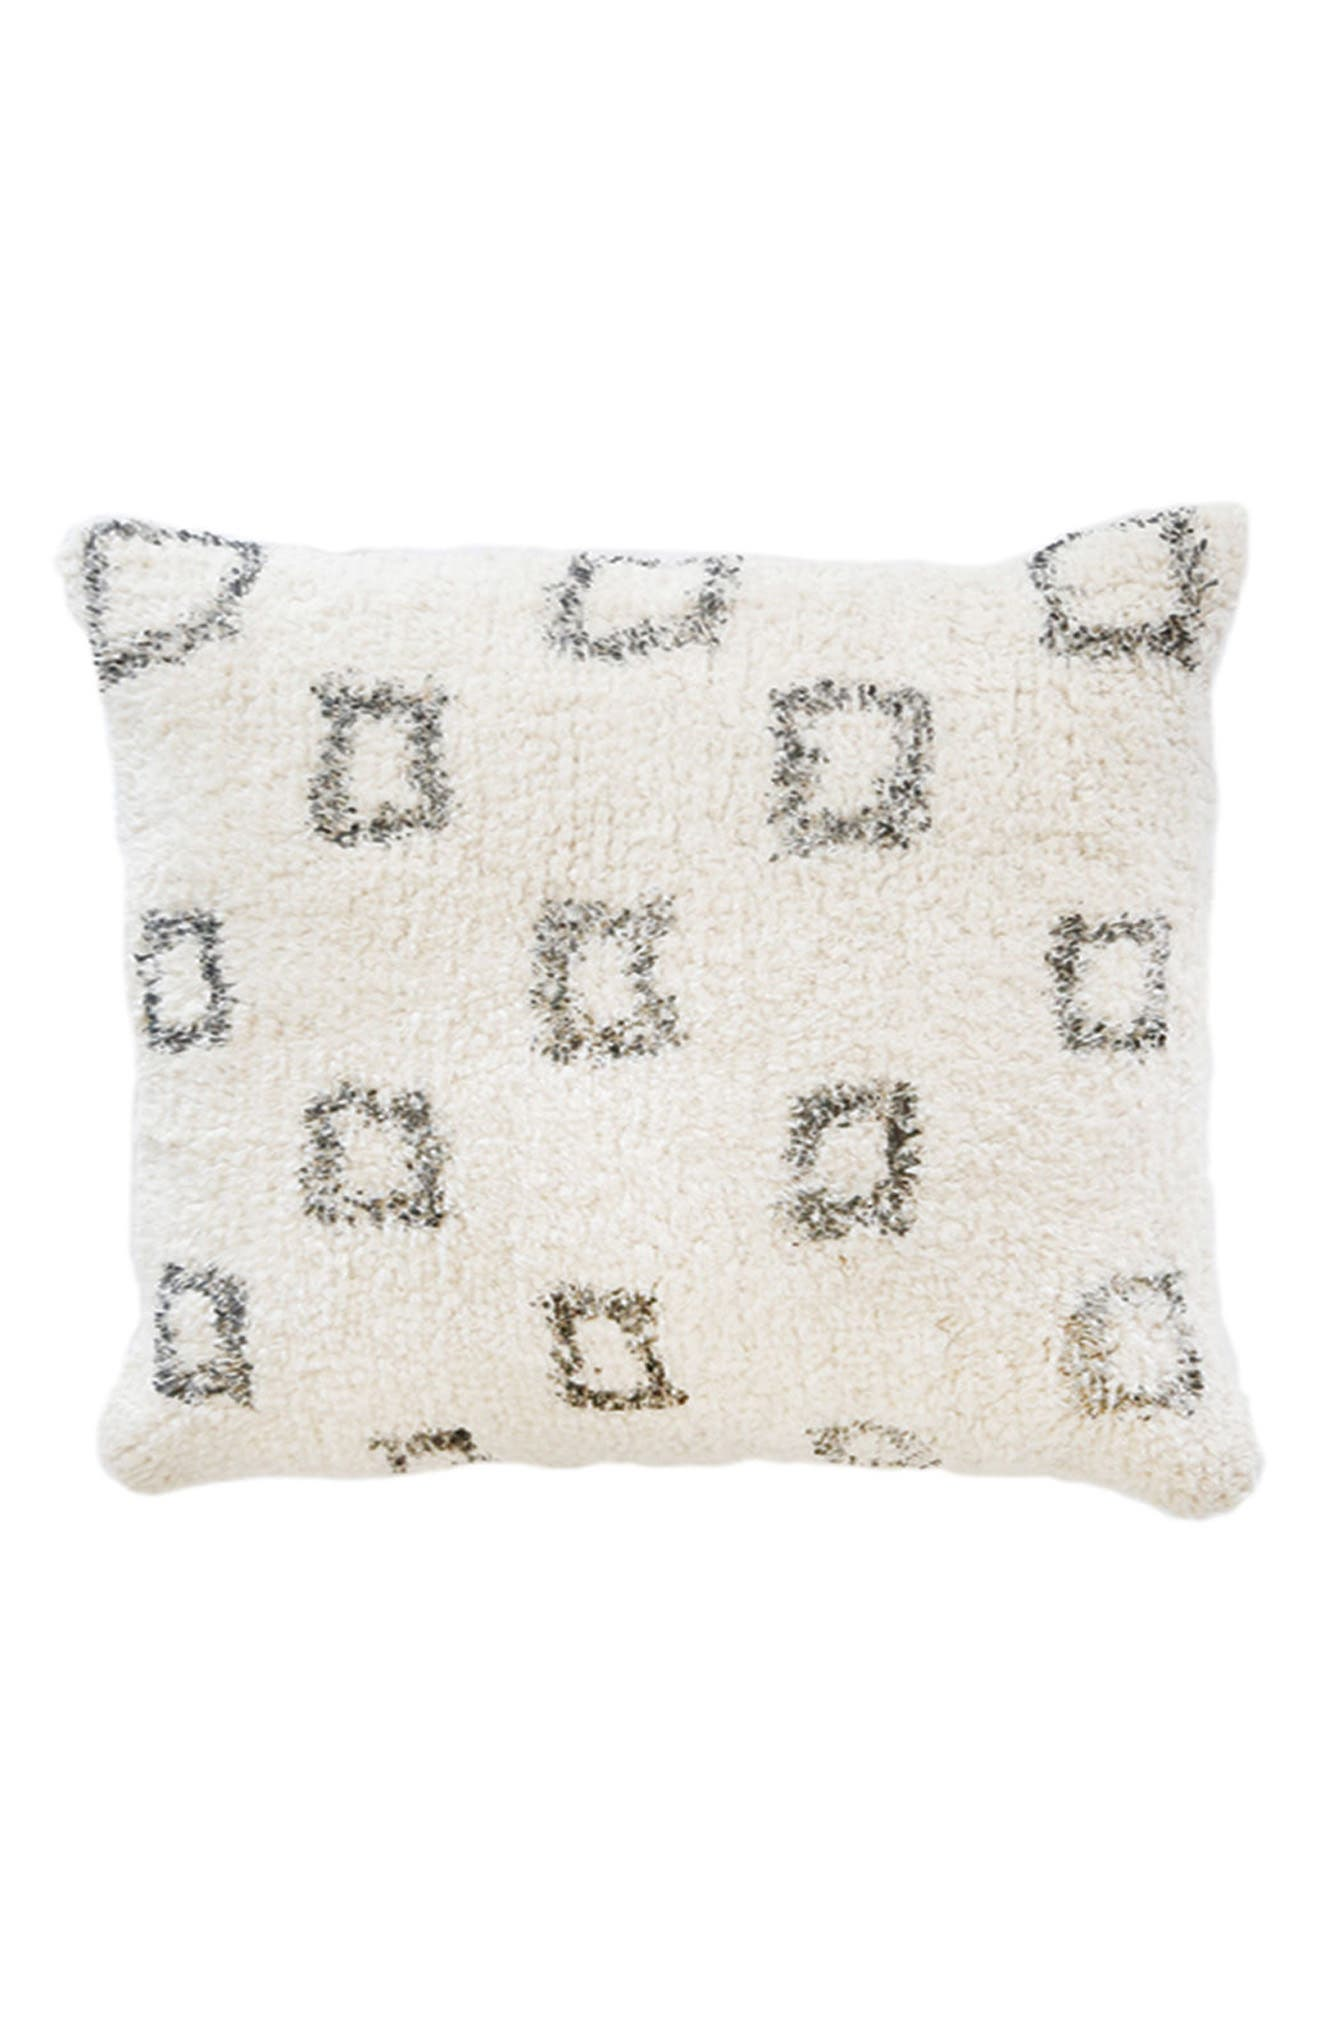 Bowie Big Accent Pillow,                         Main,                         color, Ivory